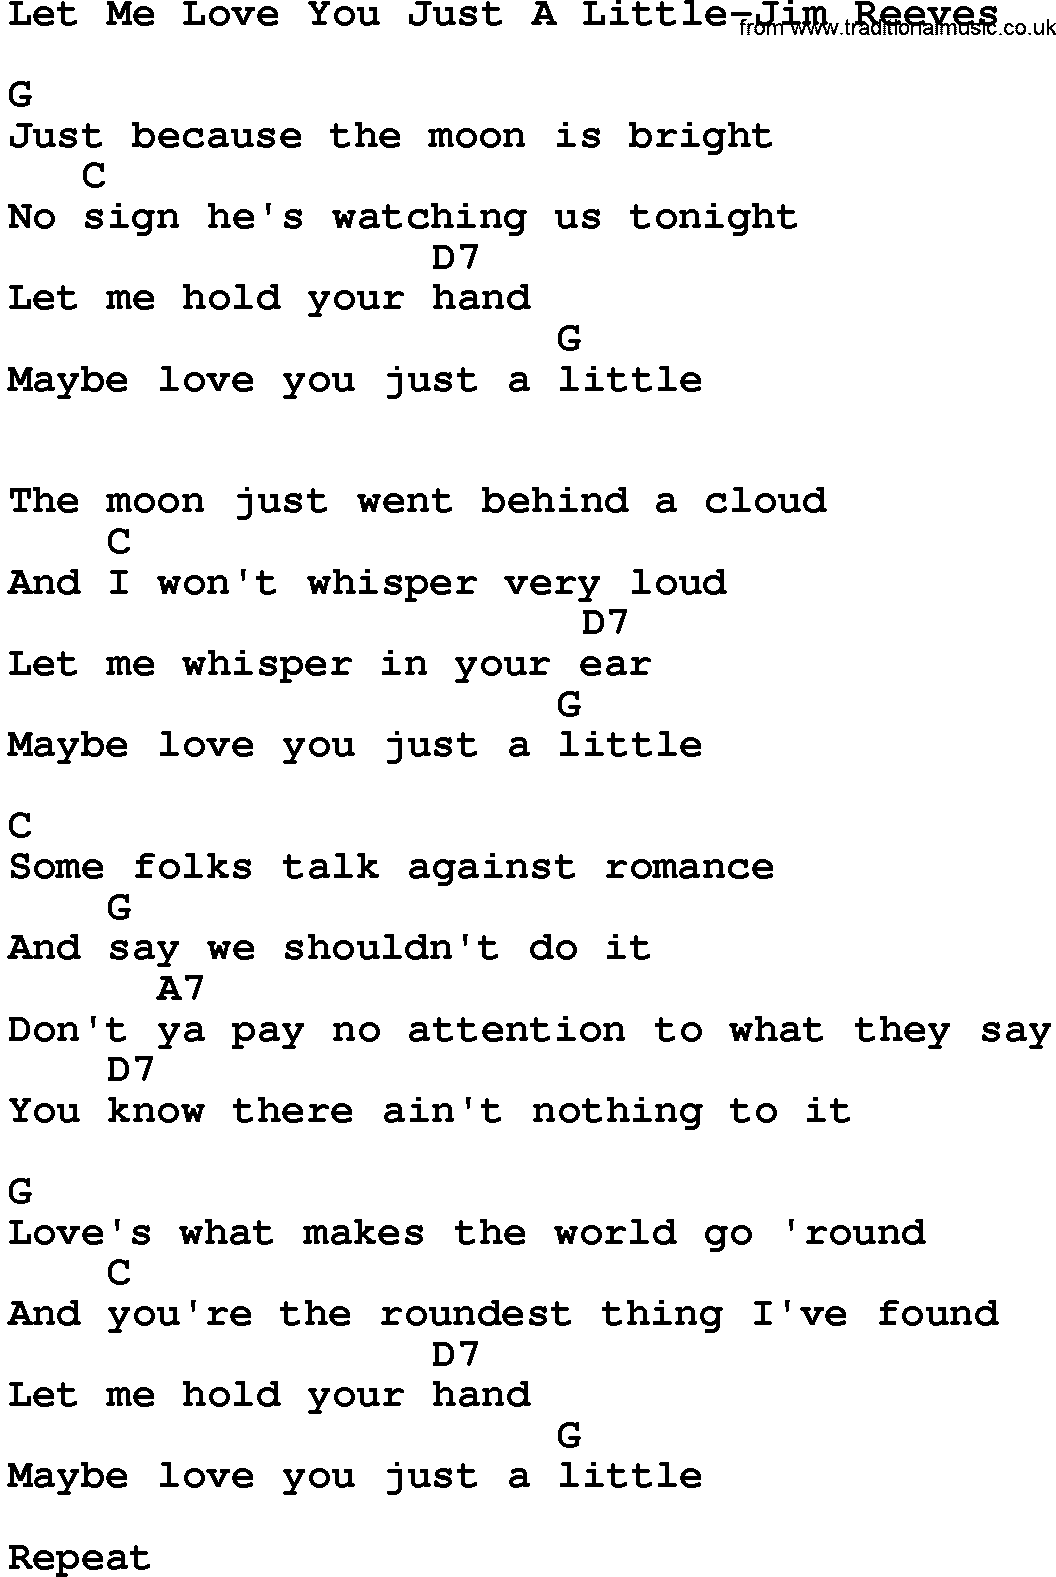 Country musiclet me love you just a little jim reeves lyrics and country musiclet me love you just a little jim reeves lyrics and chords hexwebz Images